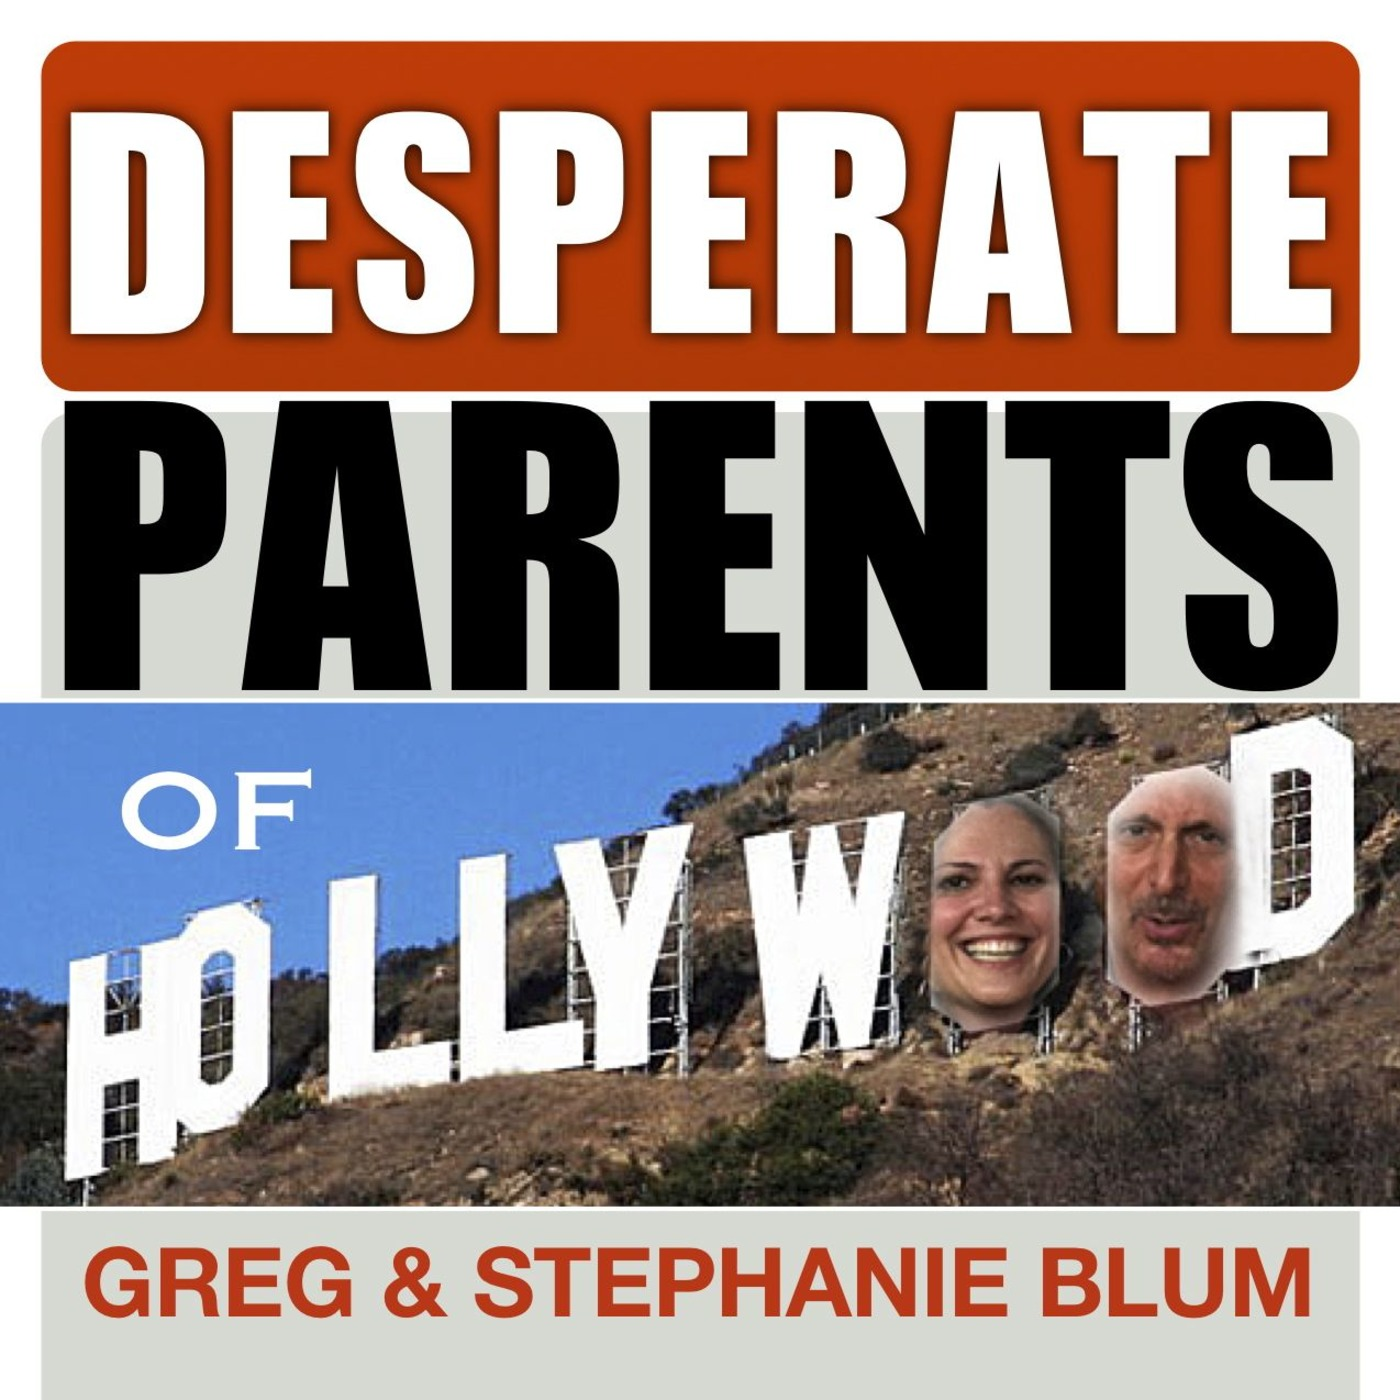 Desperate Parents of Hollywood